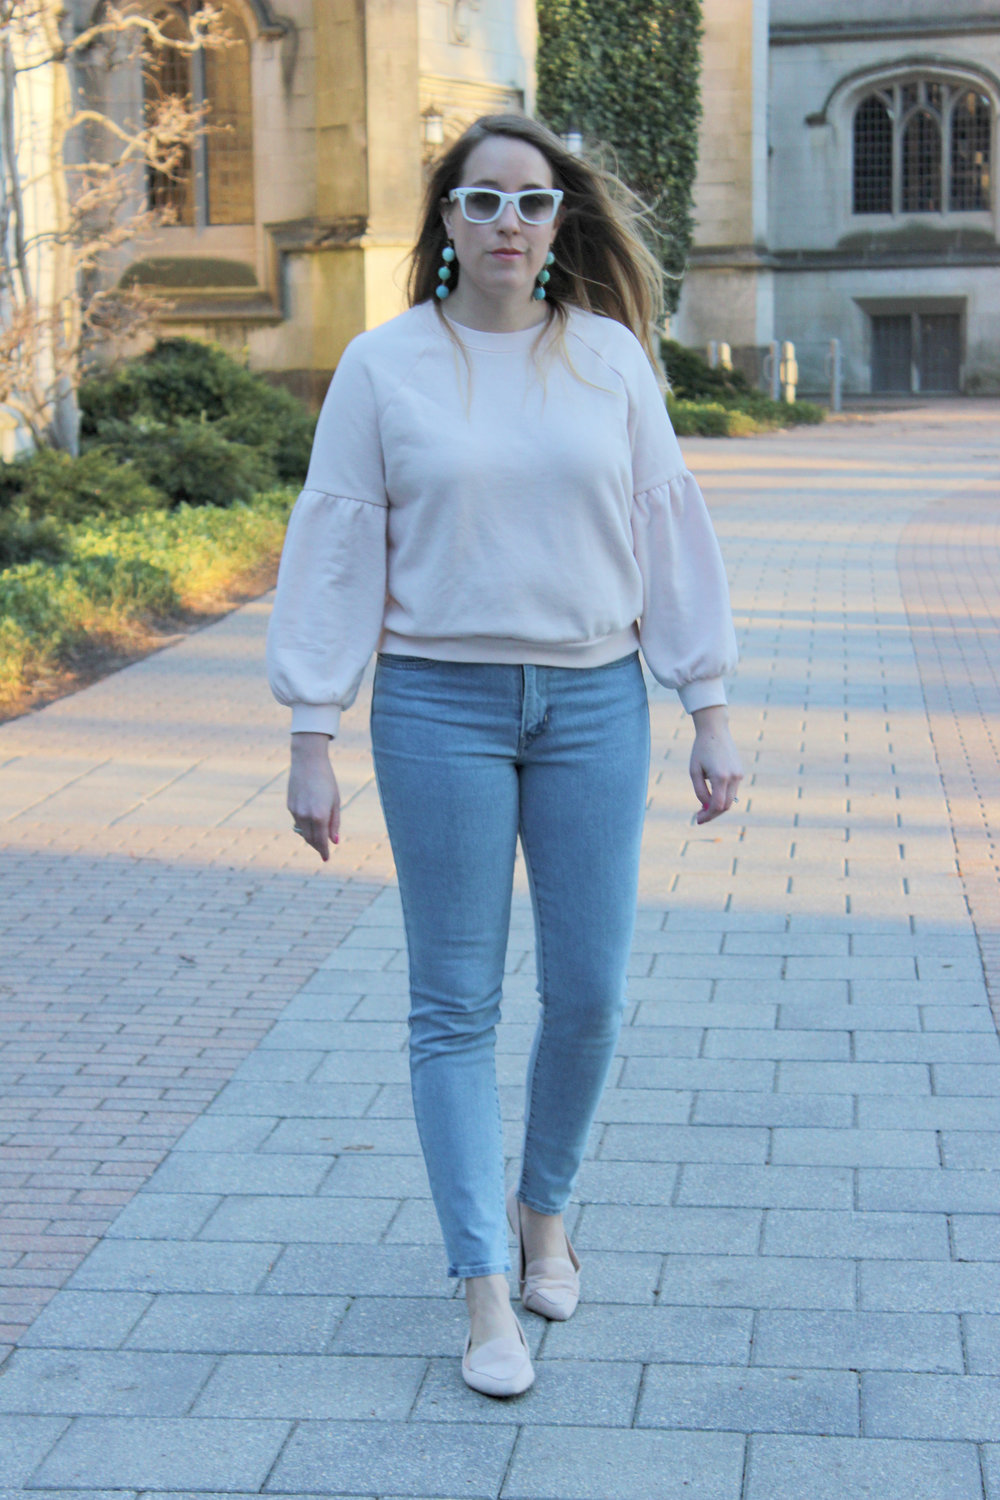 blush-pink-casual-outfit.jpg